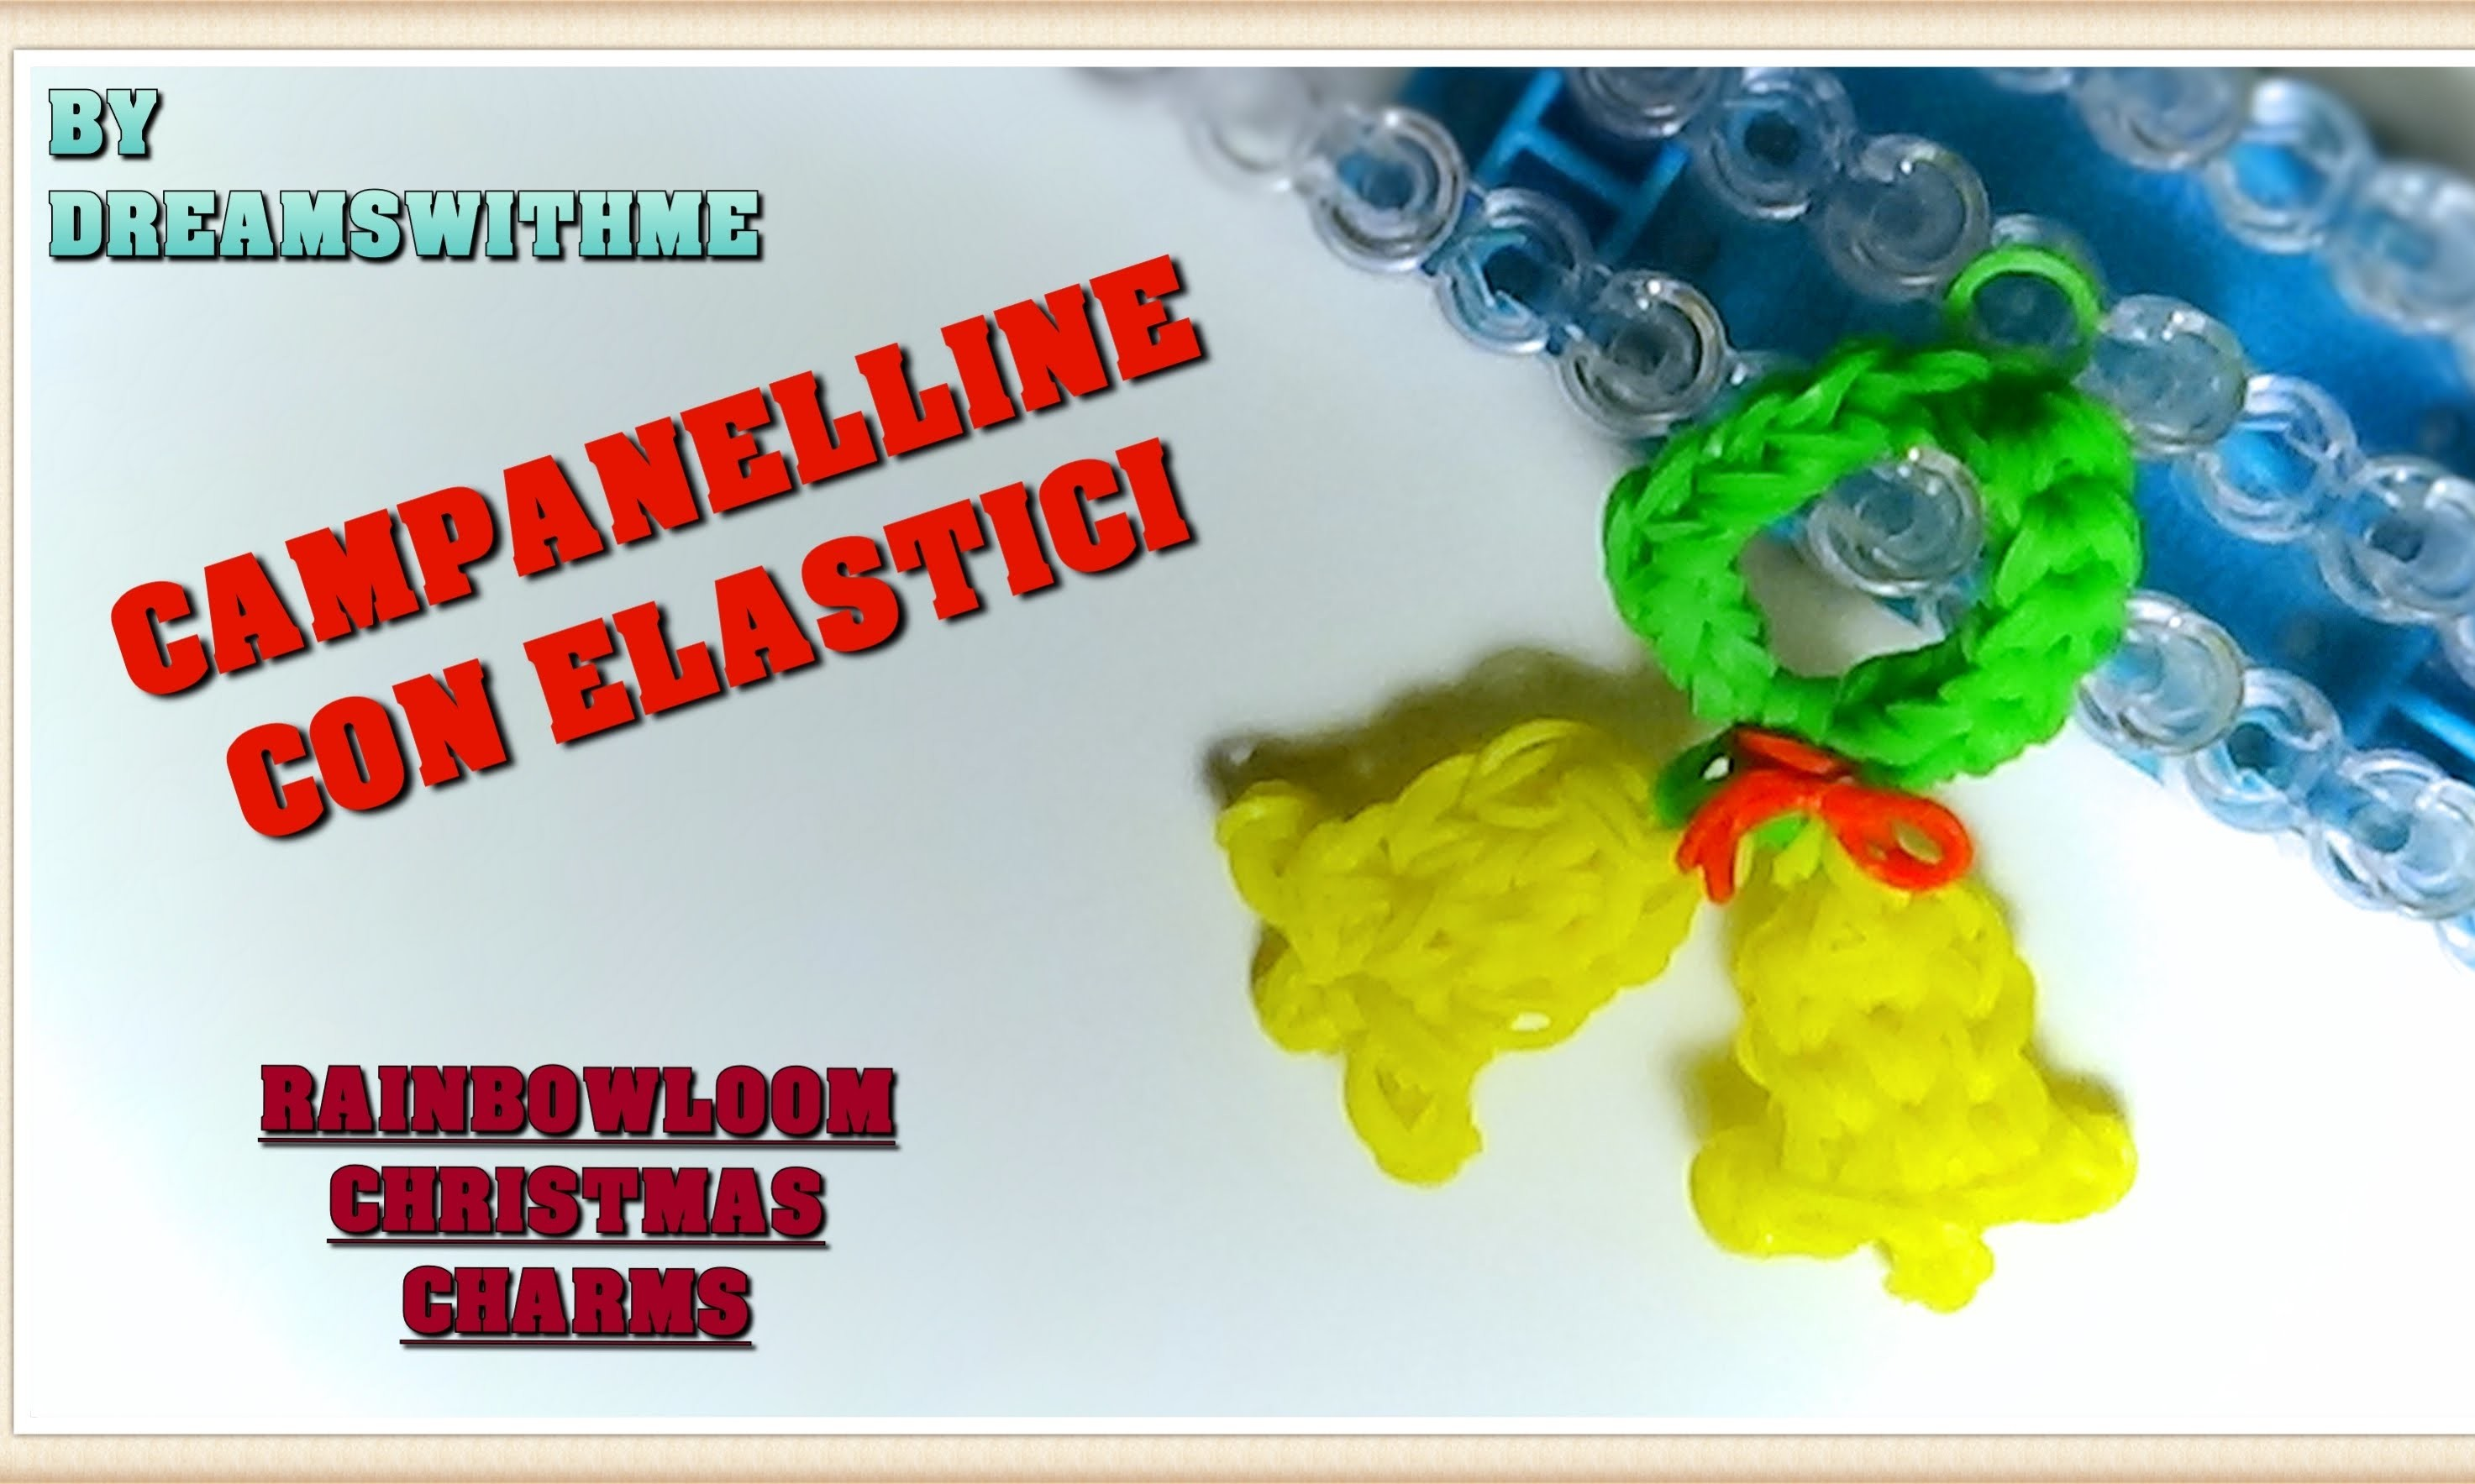 Campanelle CON ELASTICI LOOM BANDS  RAINBOW LOOM BELLS TUTORIAL CHRISTMAS CHARMS